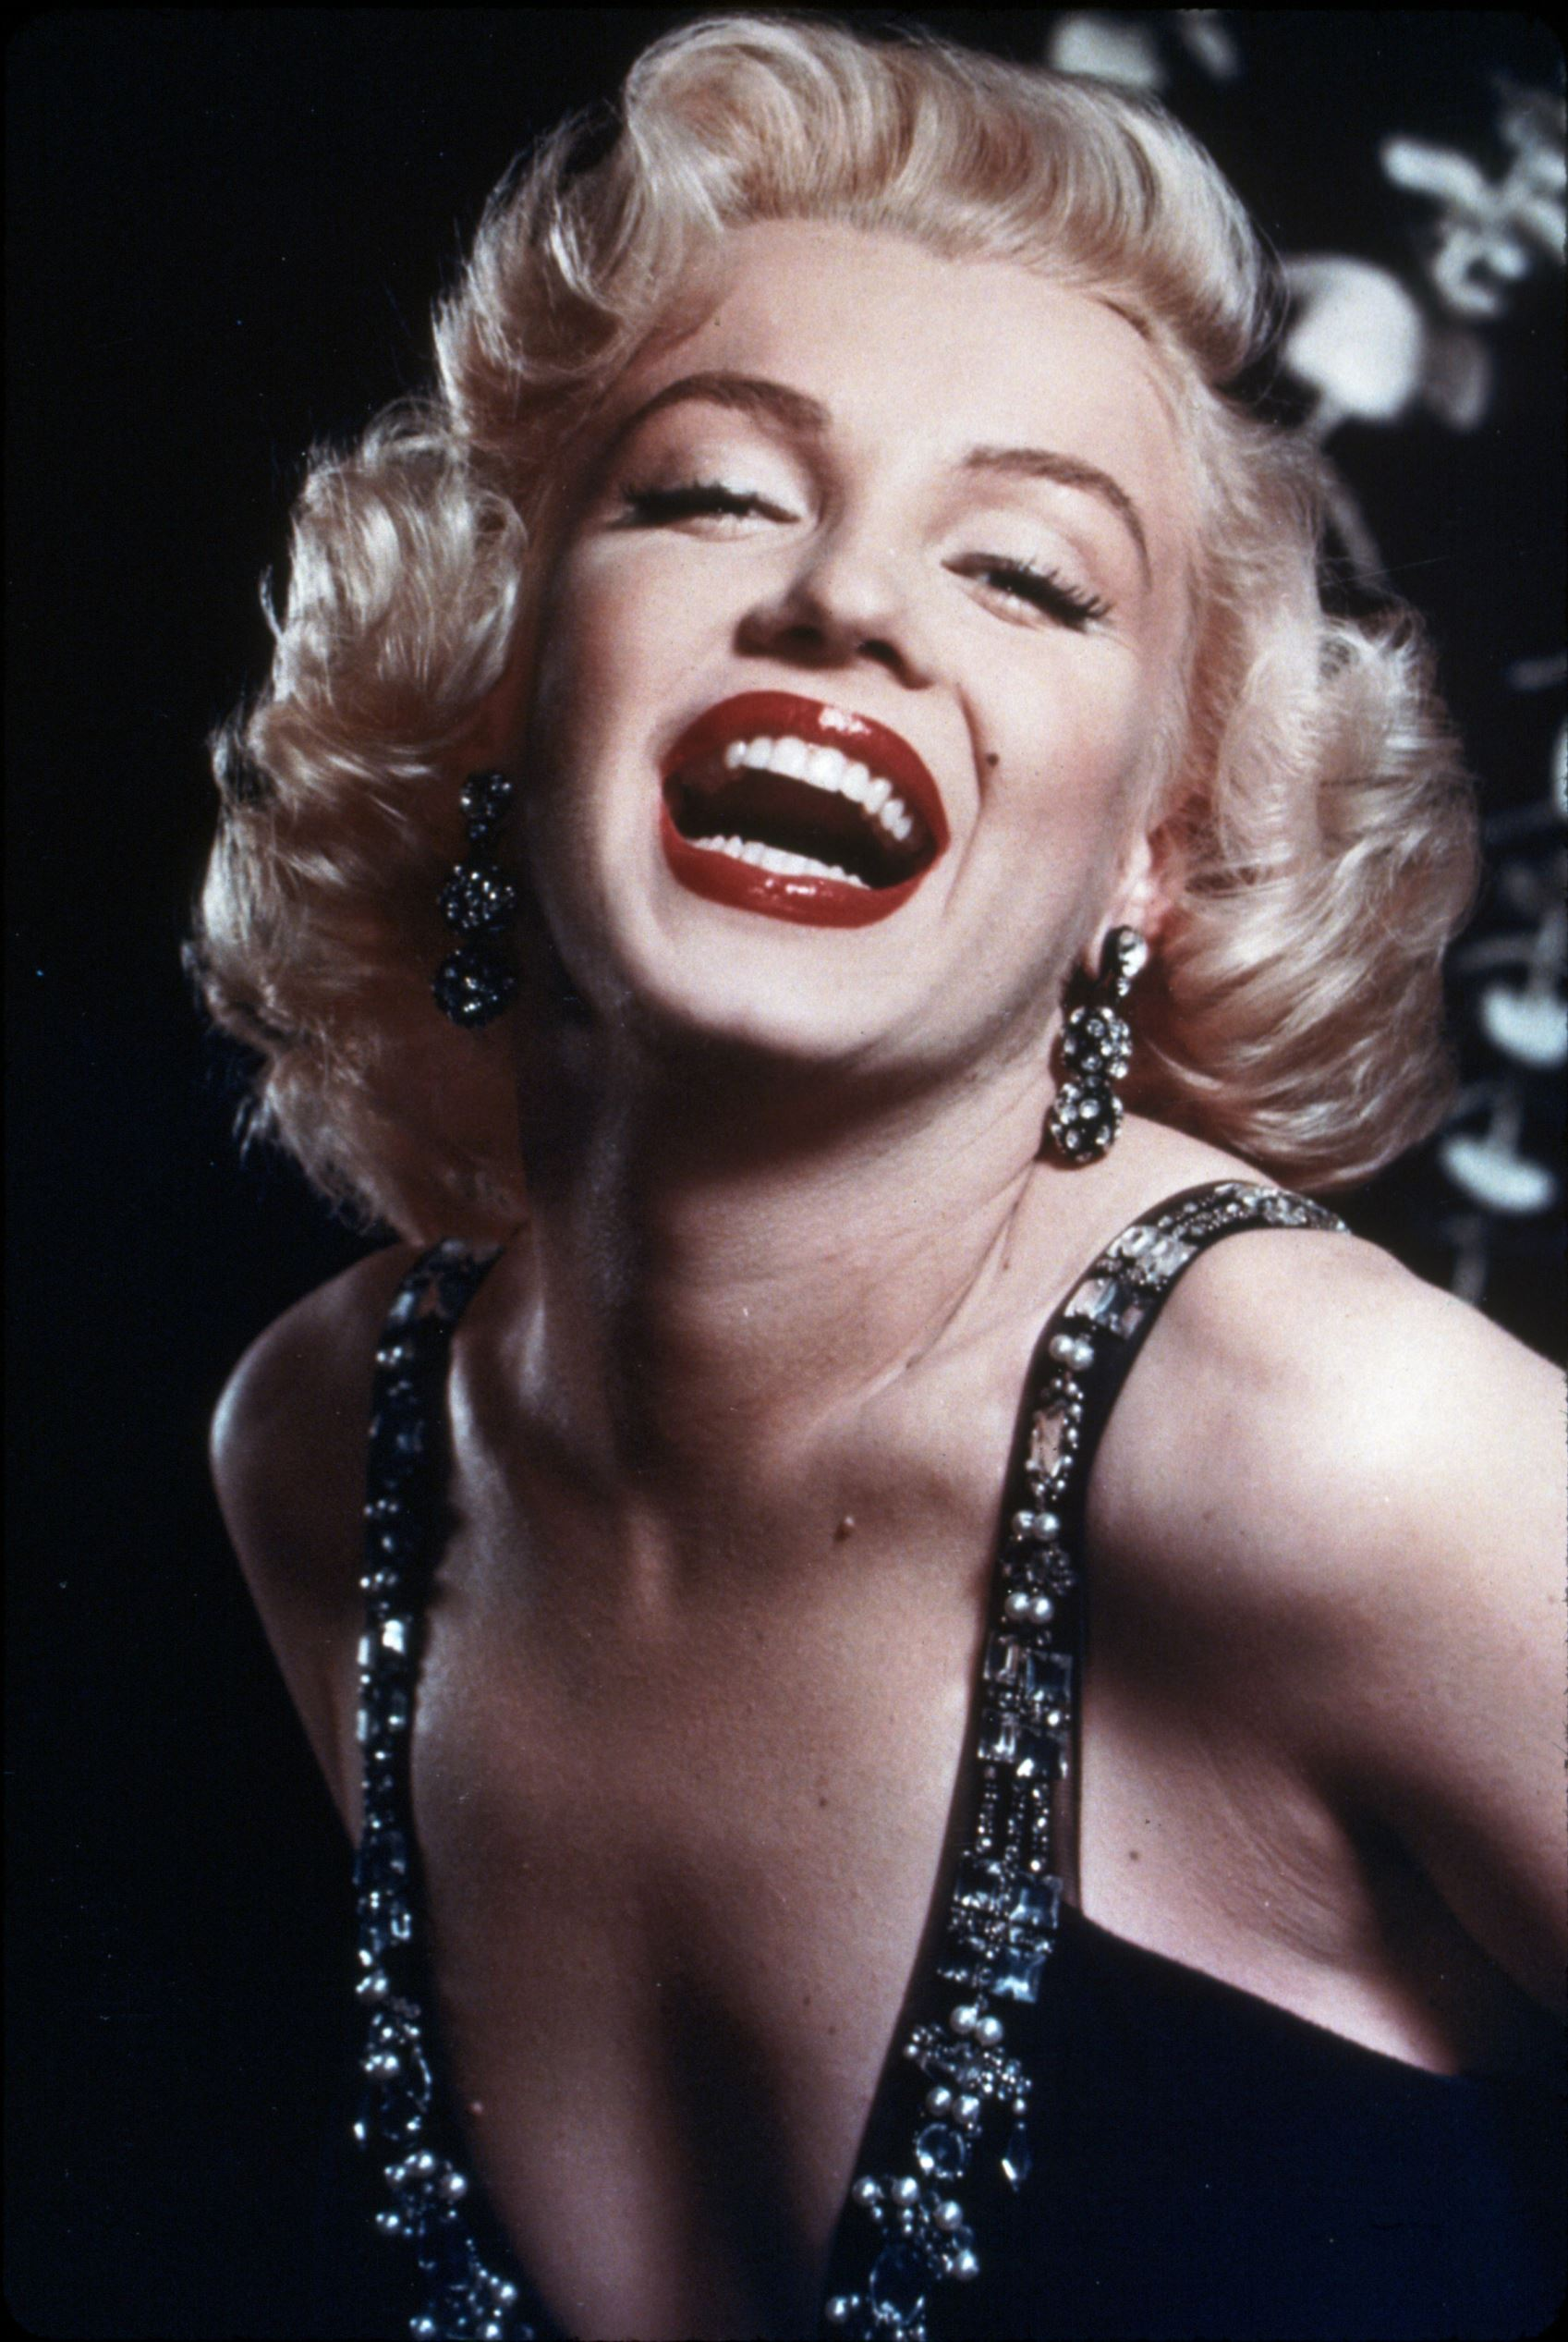 One of the biggest movie star of all time, Monroe personified style and oomph. The Hollywood diva continues to live in hearts of millions.